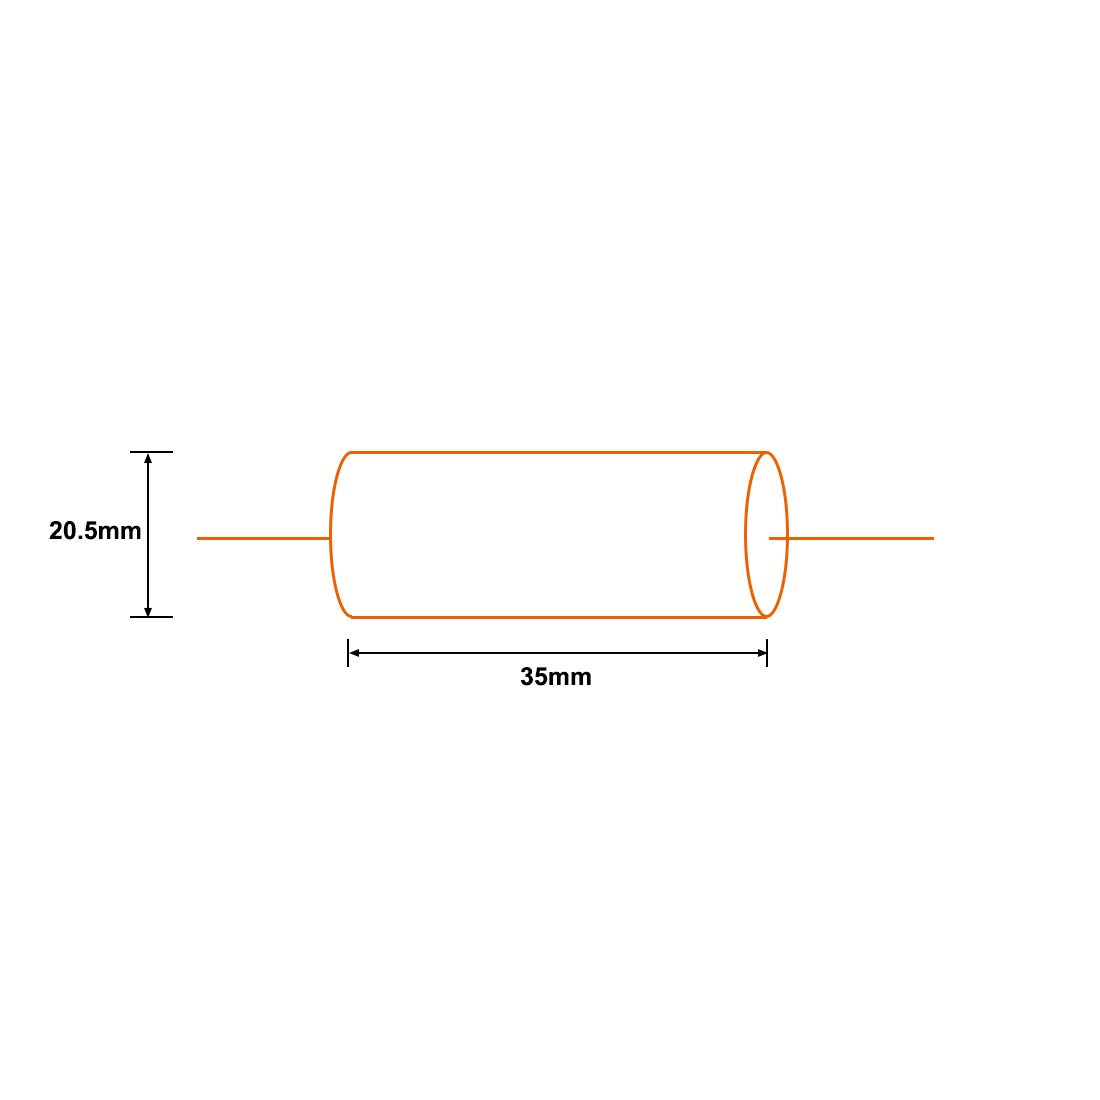 uxcell Film Capacitor 250V DC 5.6uF Round Axial Polypropylene Film Capacitor for Audio Divider Yellow